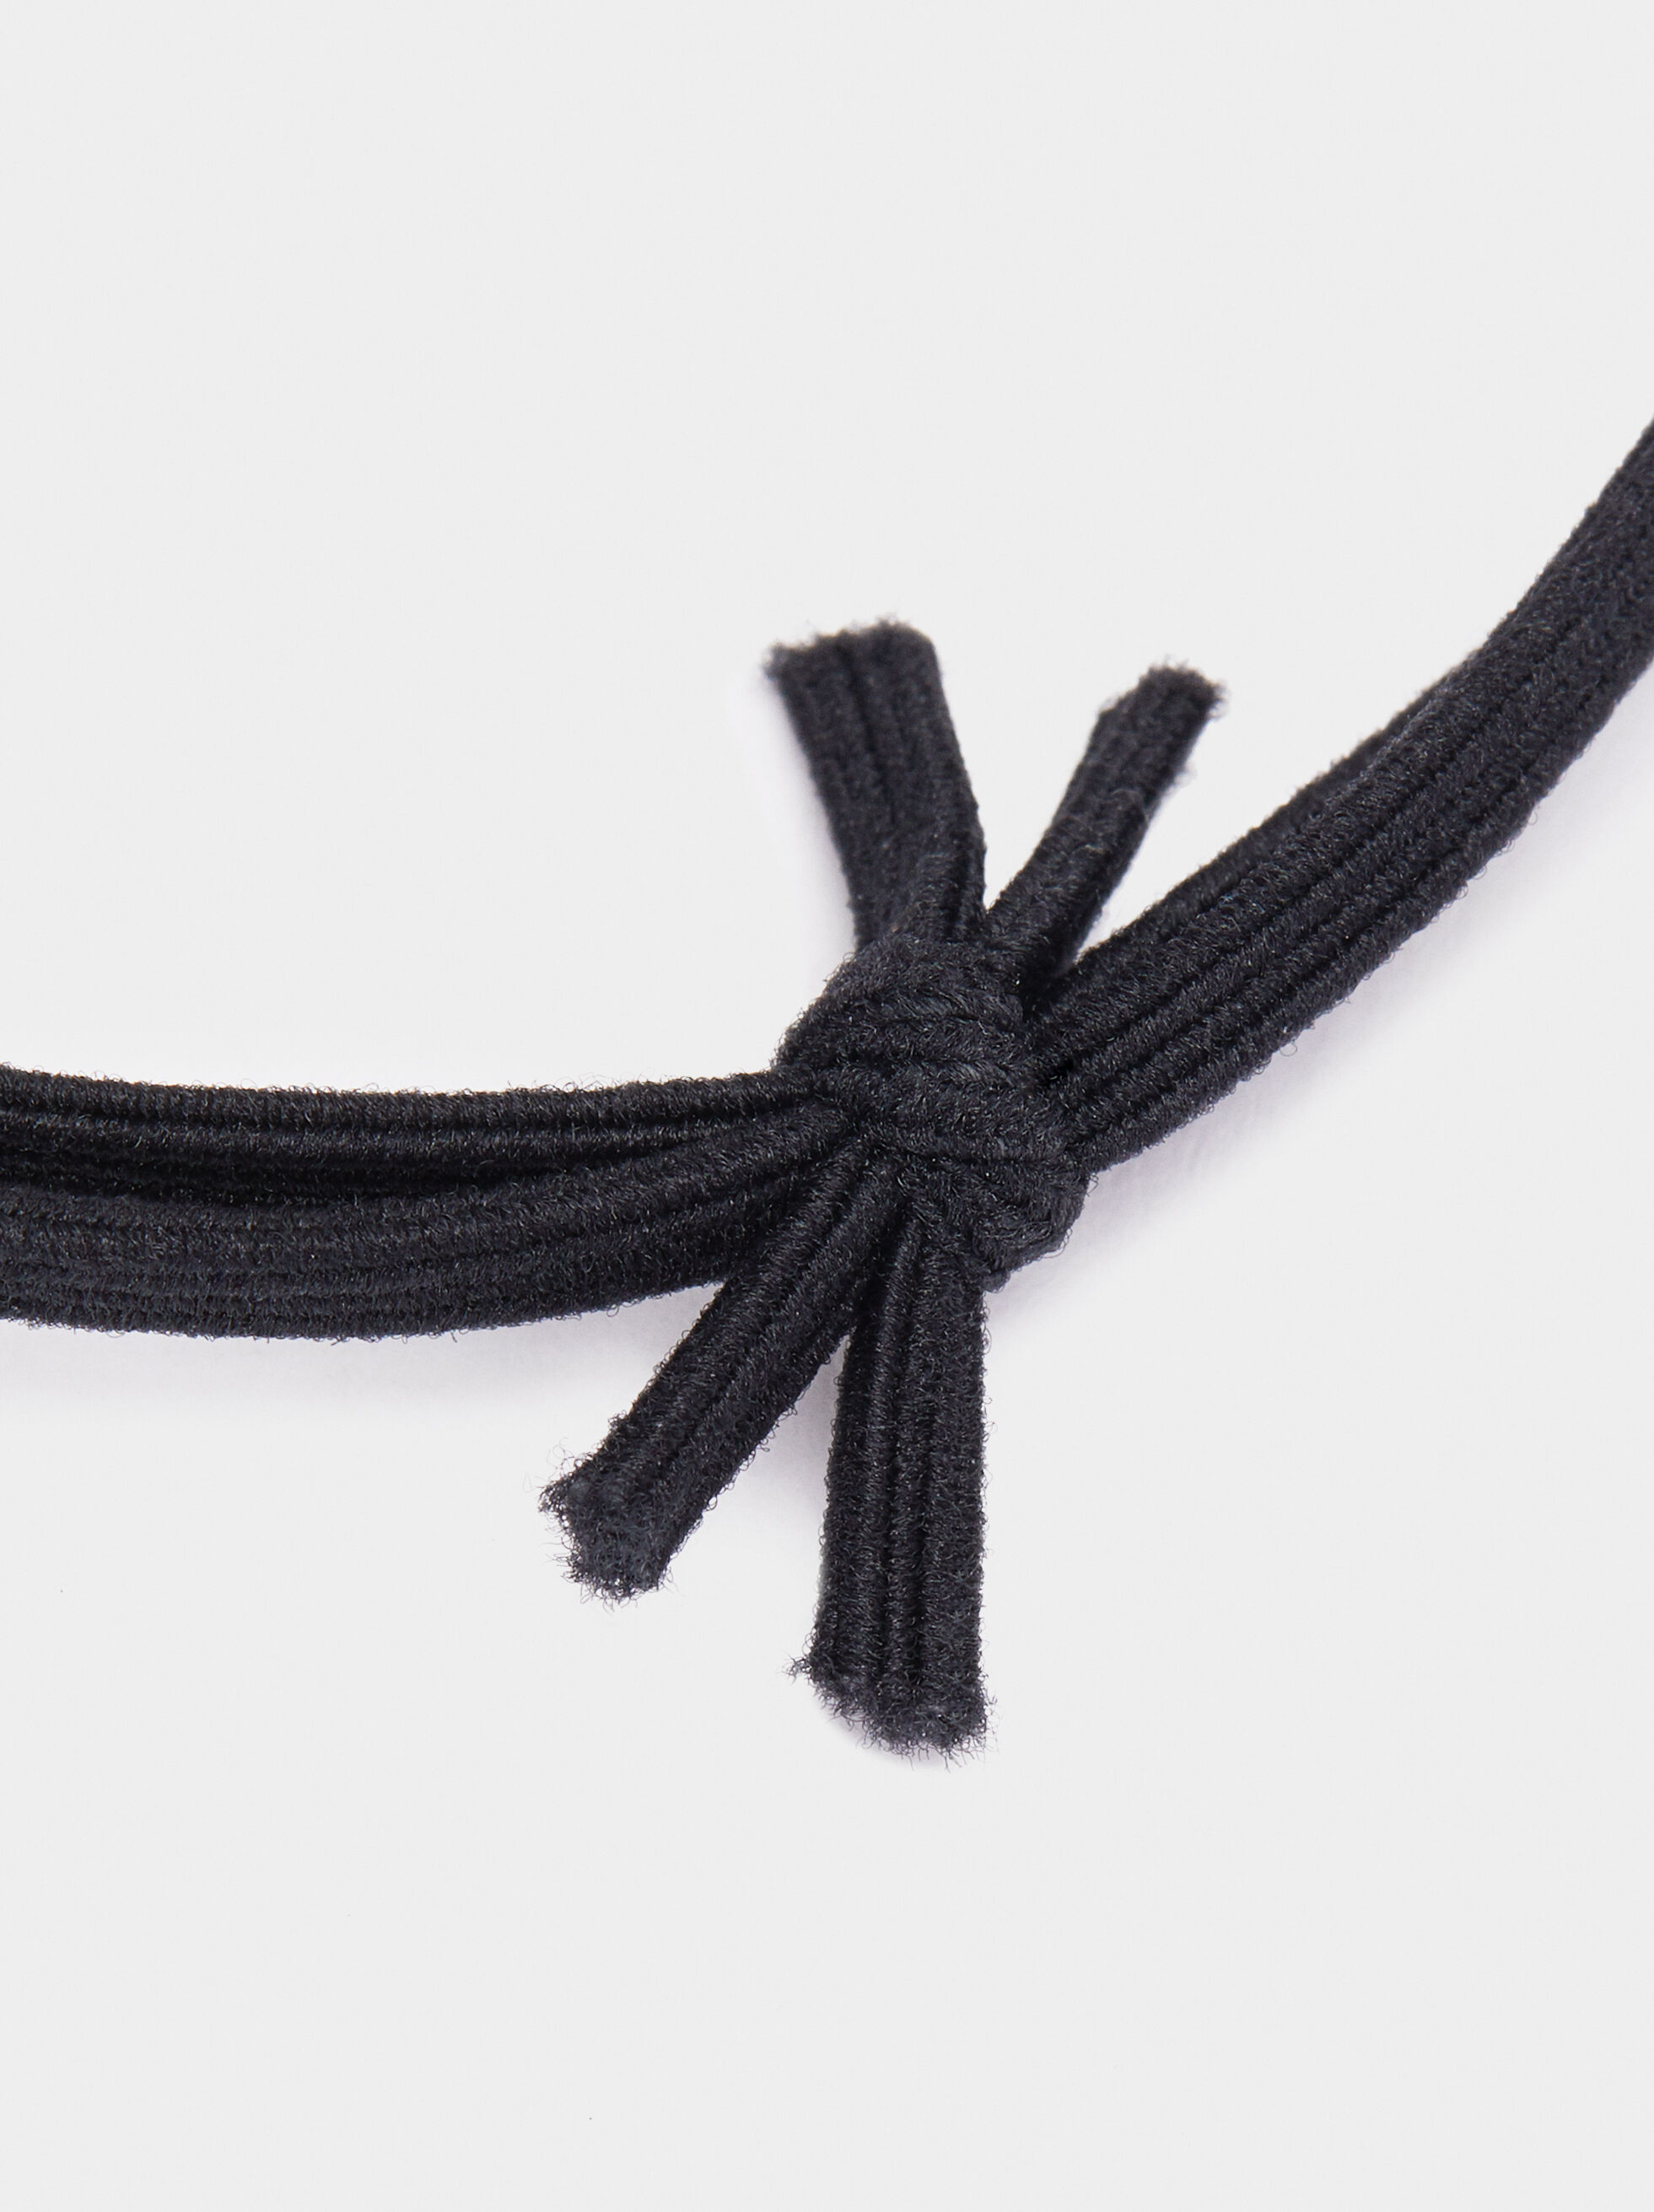 Hair Tie With Metal Appliqué, Black, hi-res